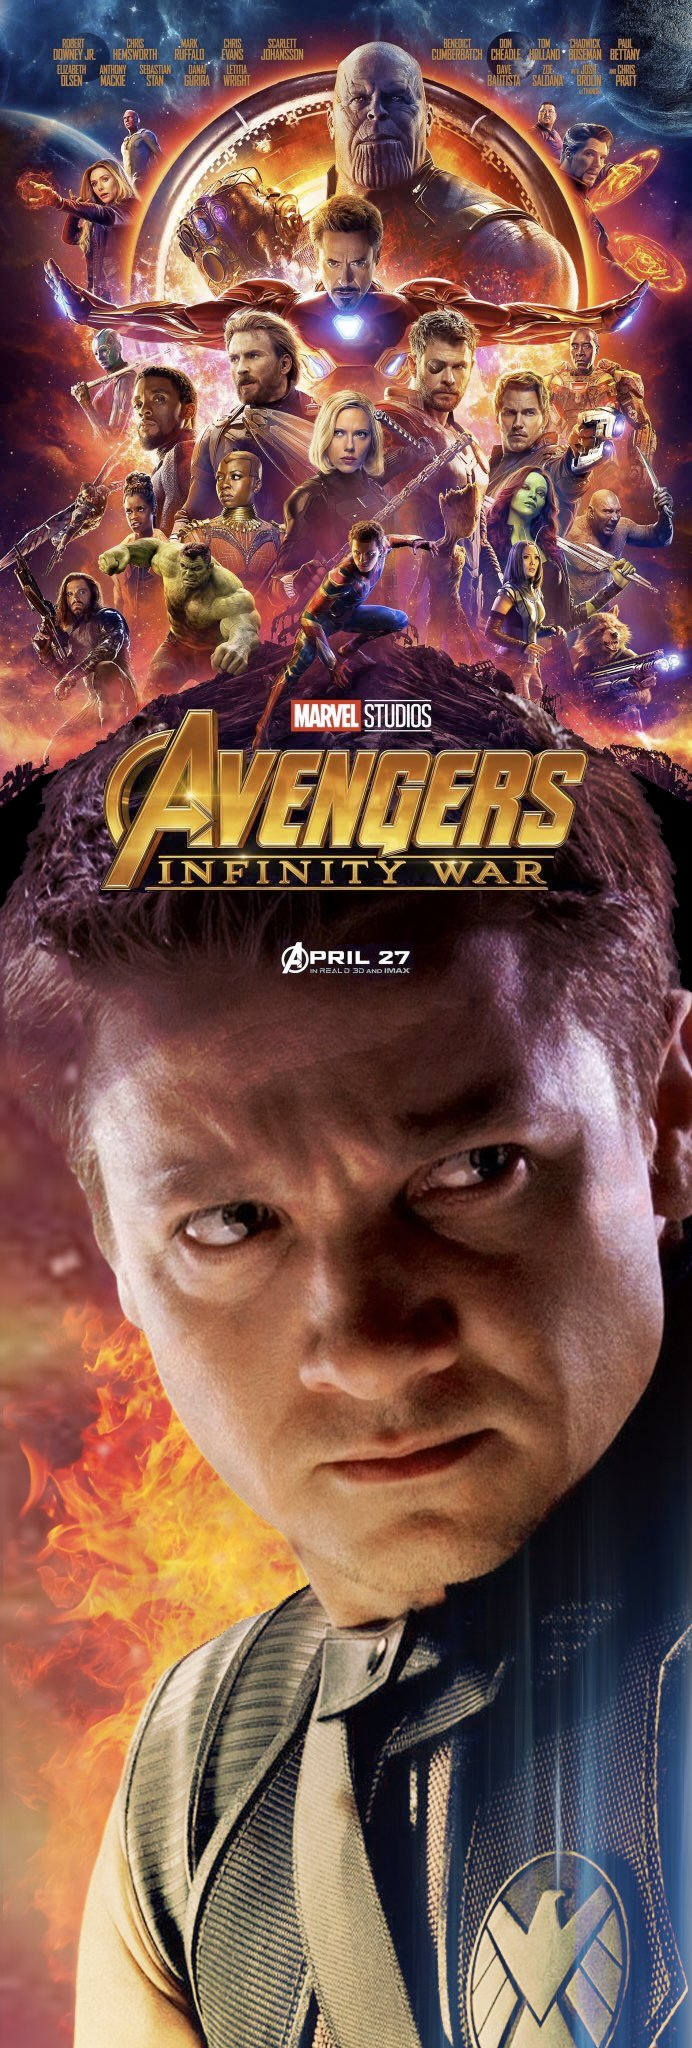 These Fan Made Avengers Infinity War Posters Make Up For